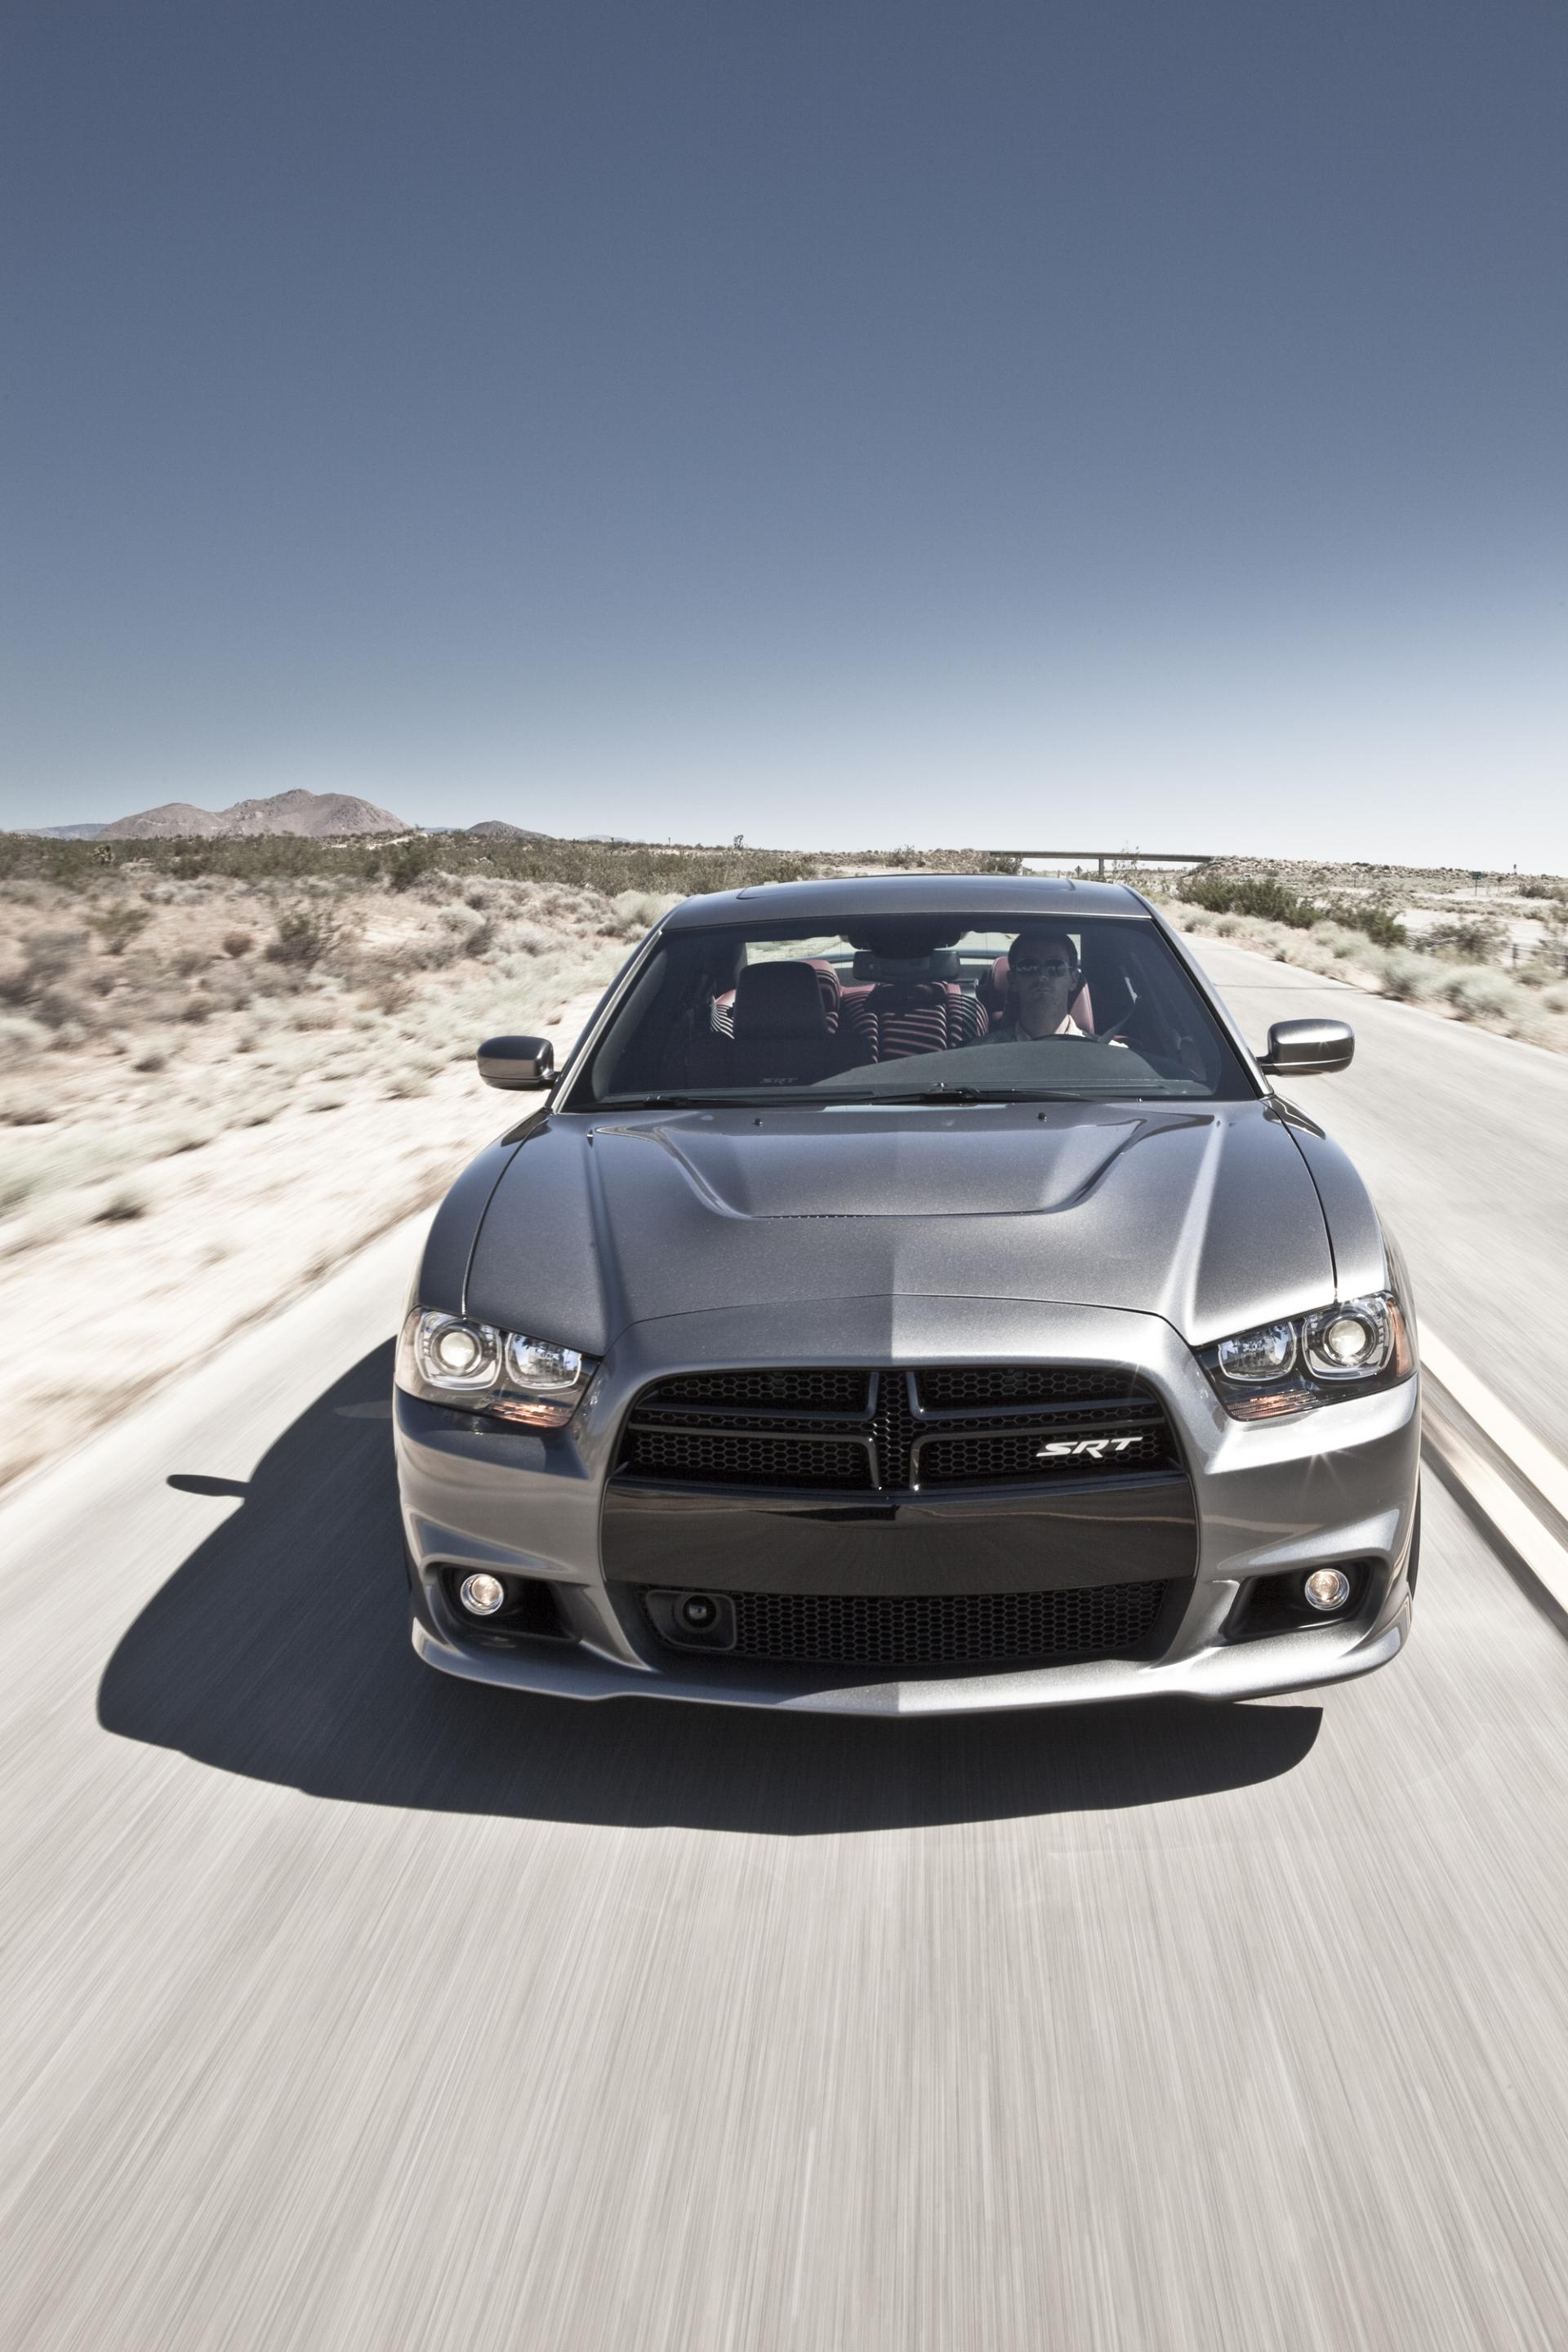 Srt8 2018 >> 2012 Dodge Charger SRT8 Image. Photo 73 of 88